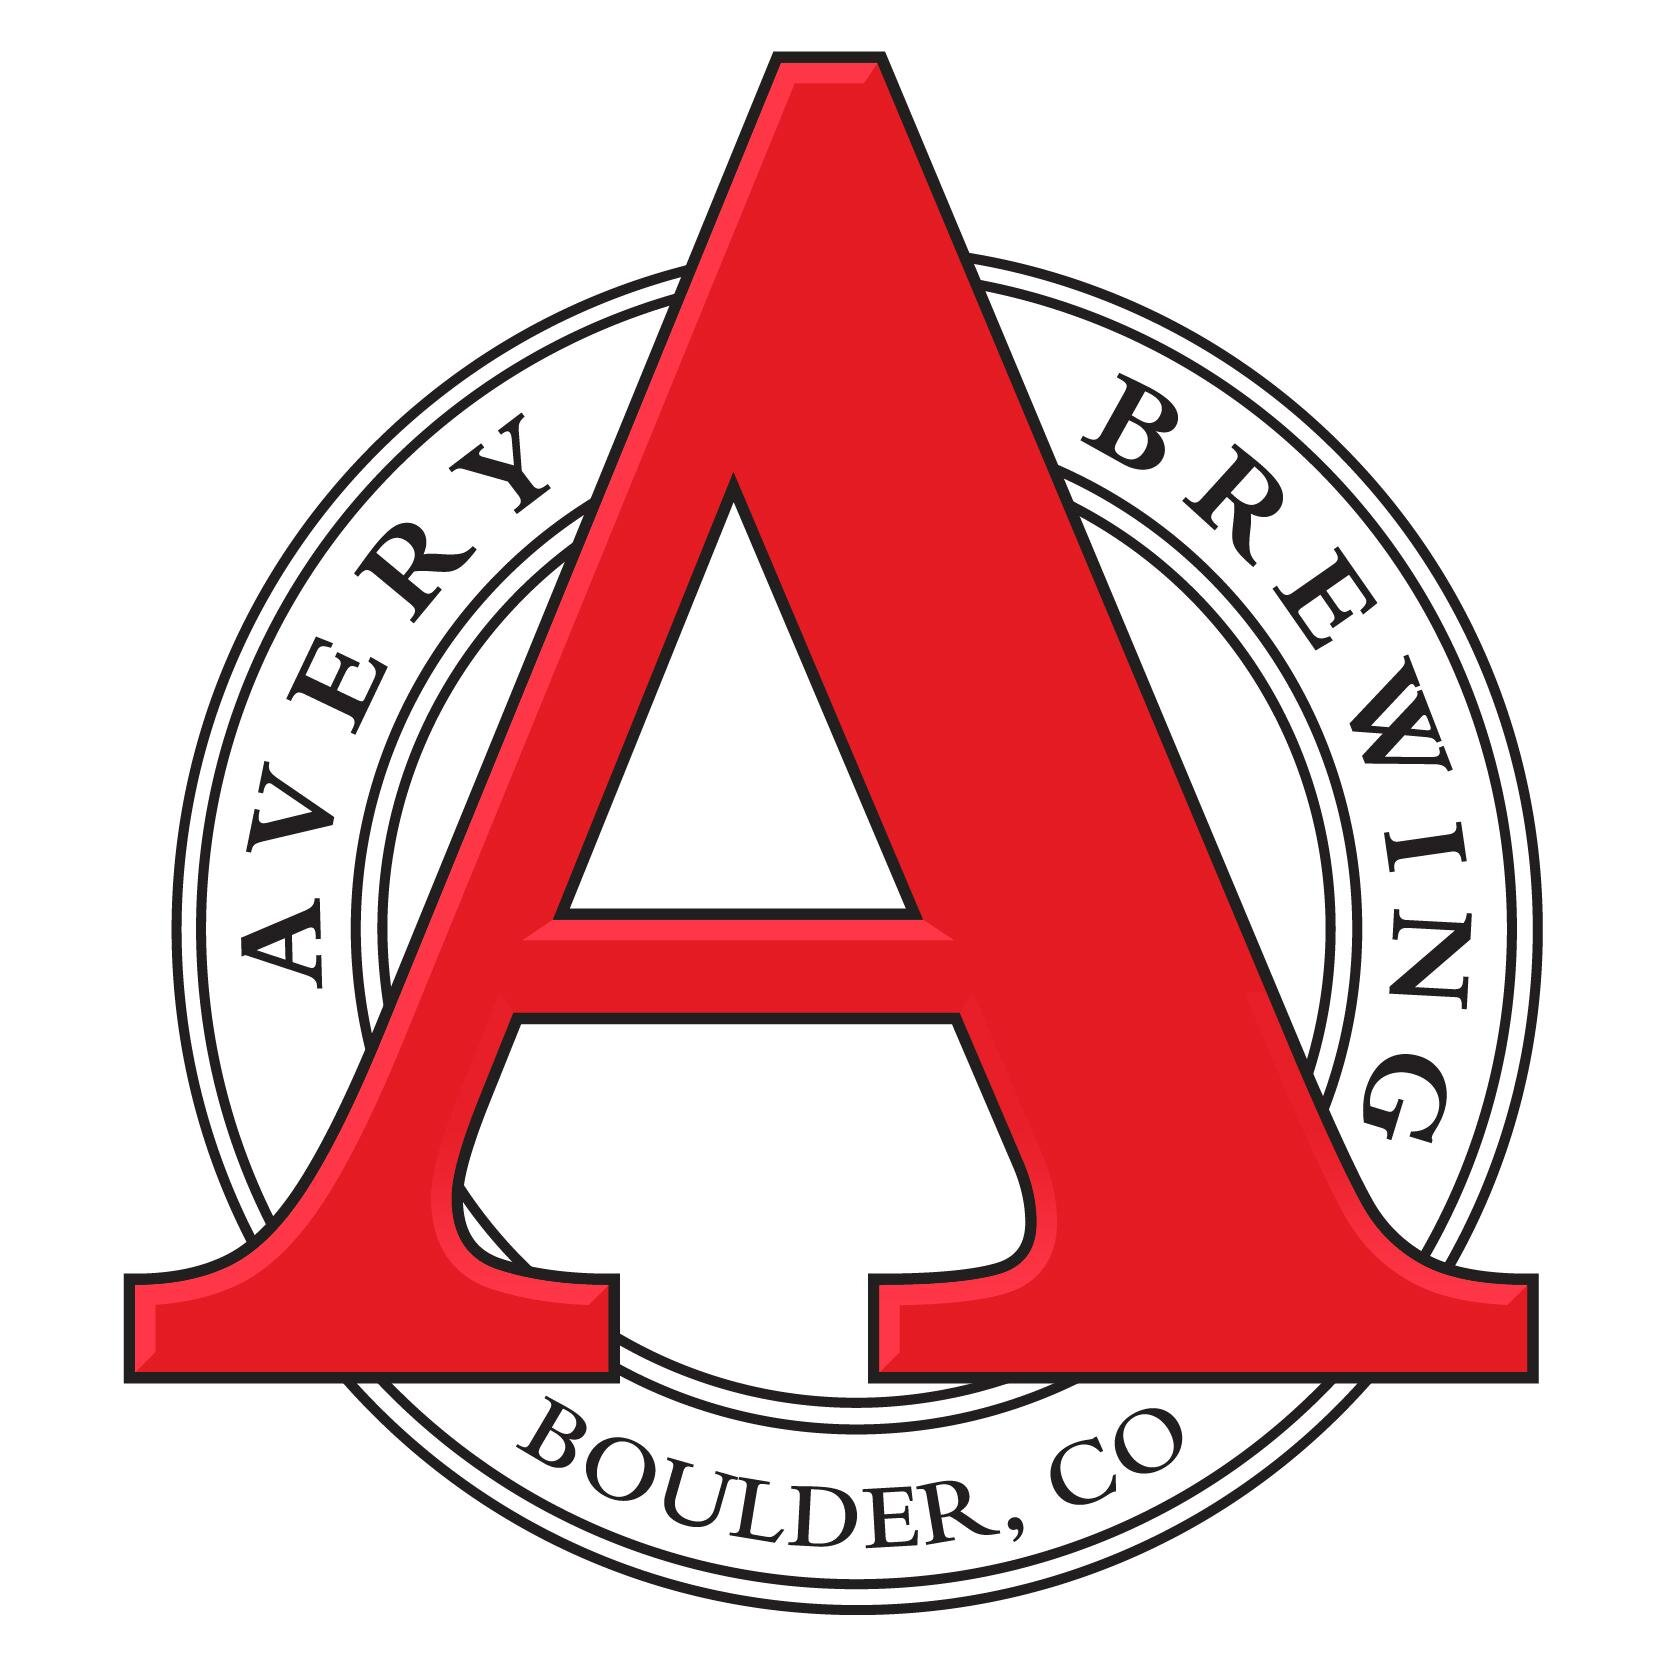 National Chain Accounts Manager - Avery Brewing Co.